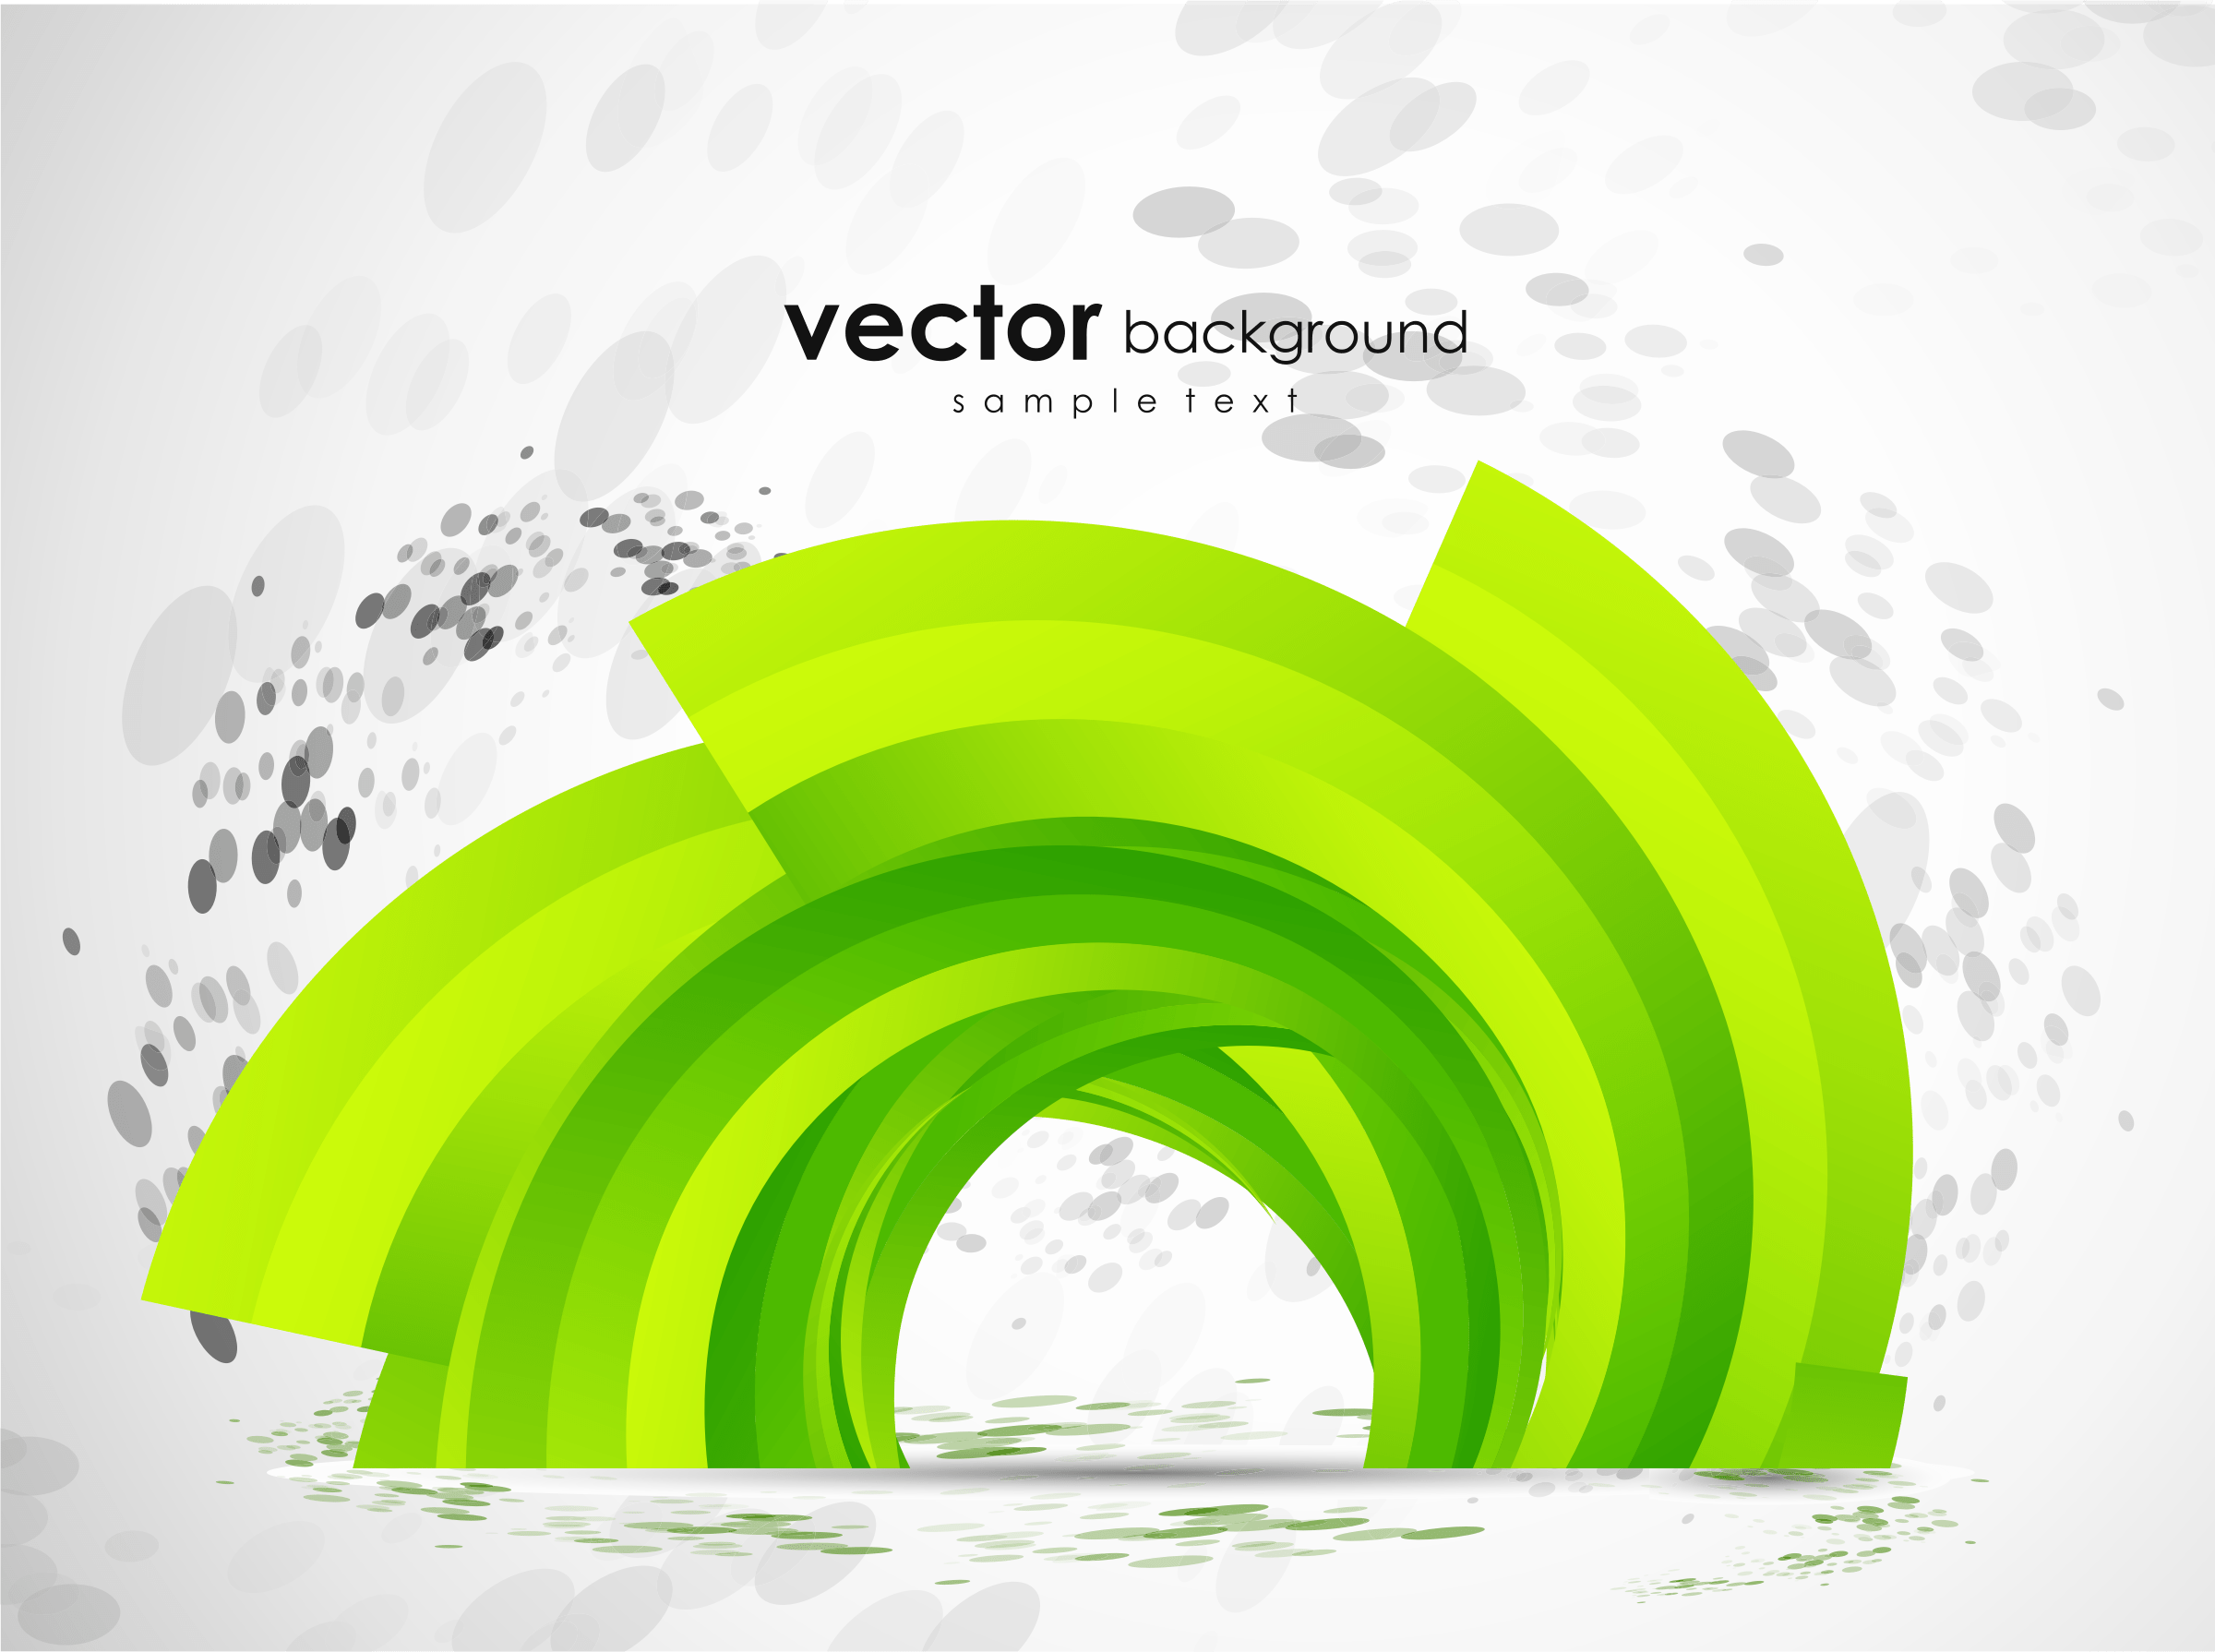 Free Download Wallpaper 3d Graphic Clipart Green Abstract Vector Background